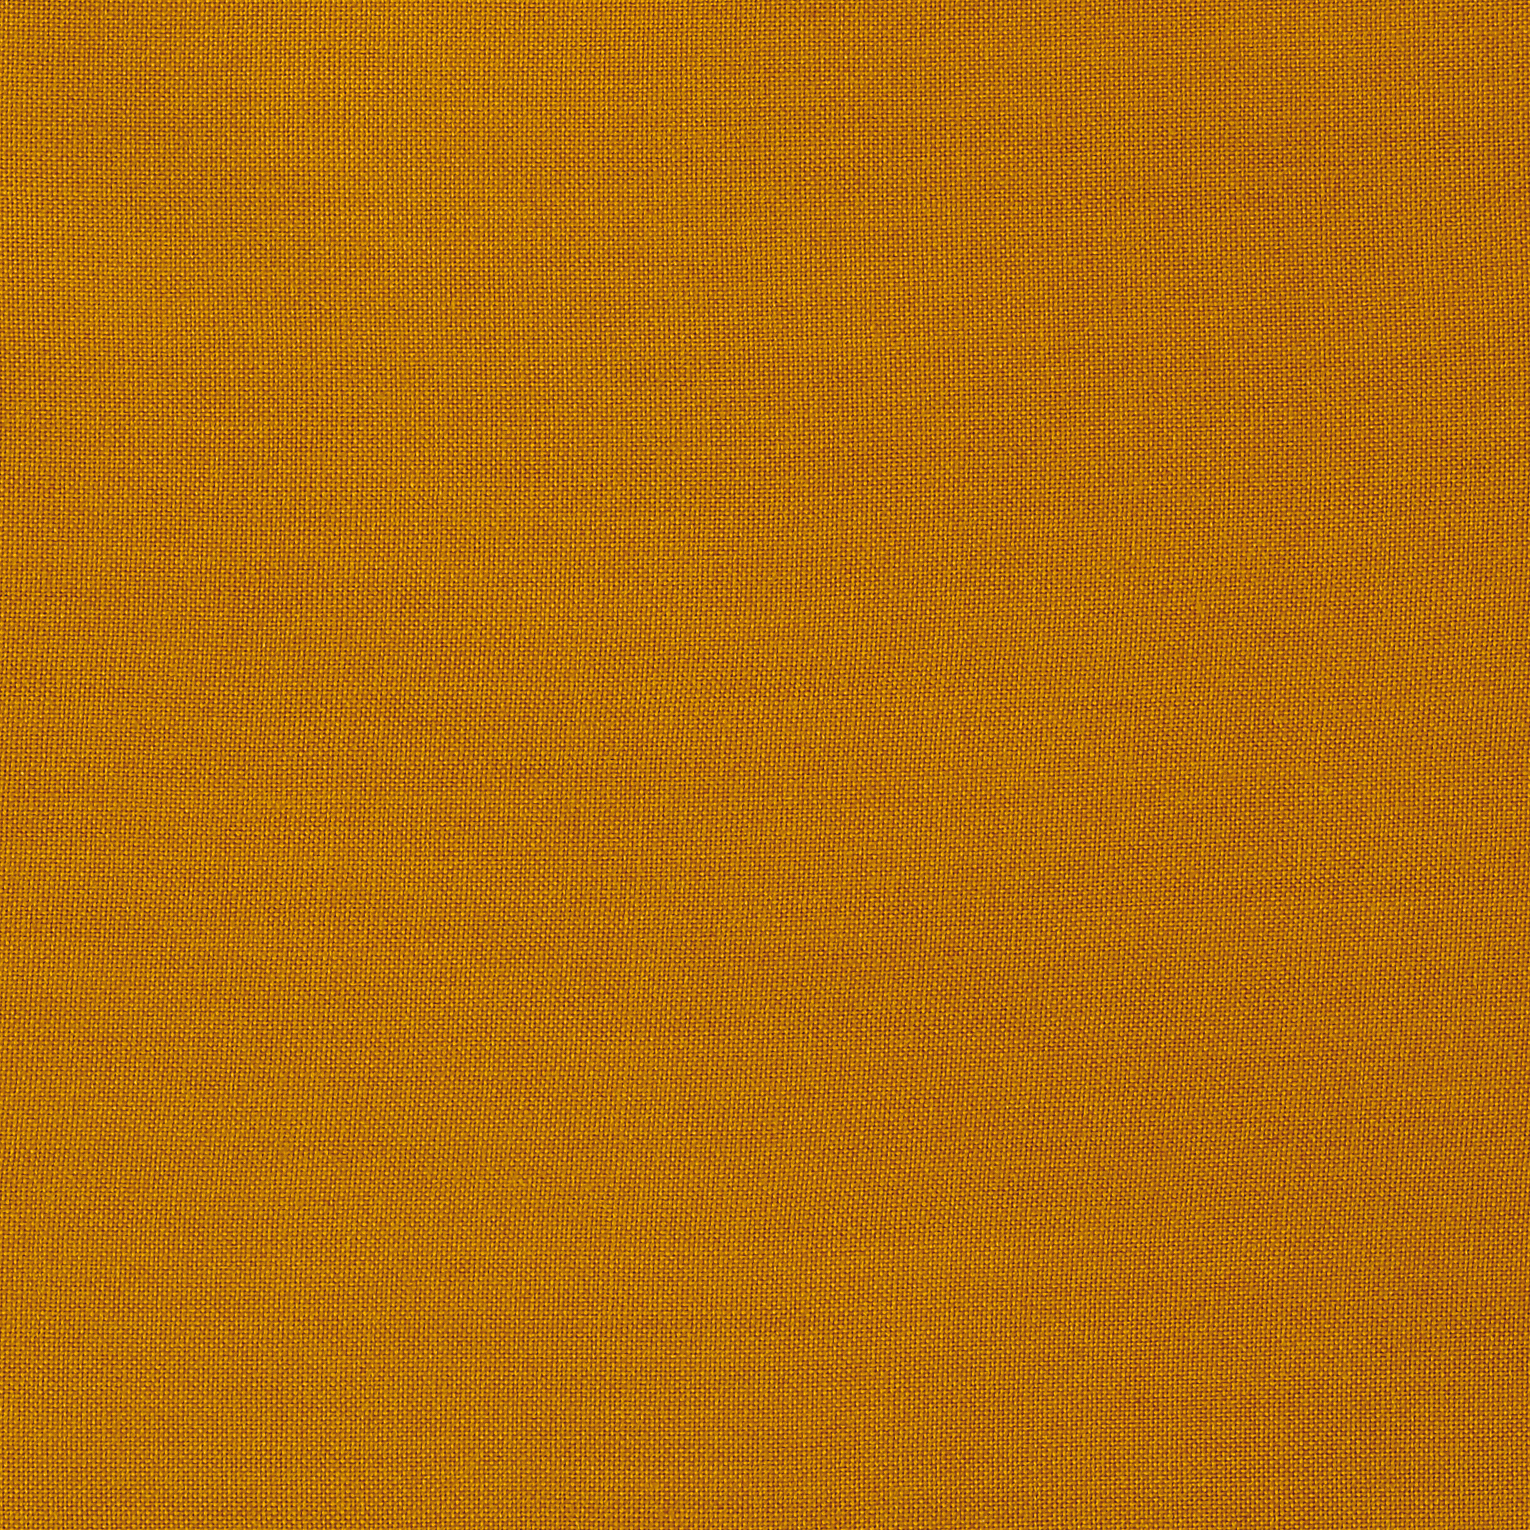 Rayon Challis Solid Mustard Fabric by Fabric Merchants in USA